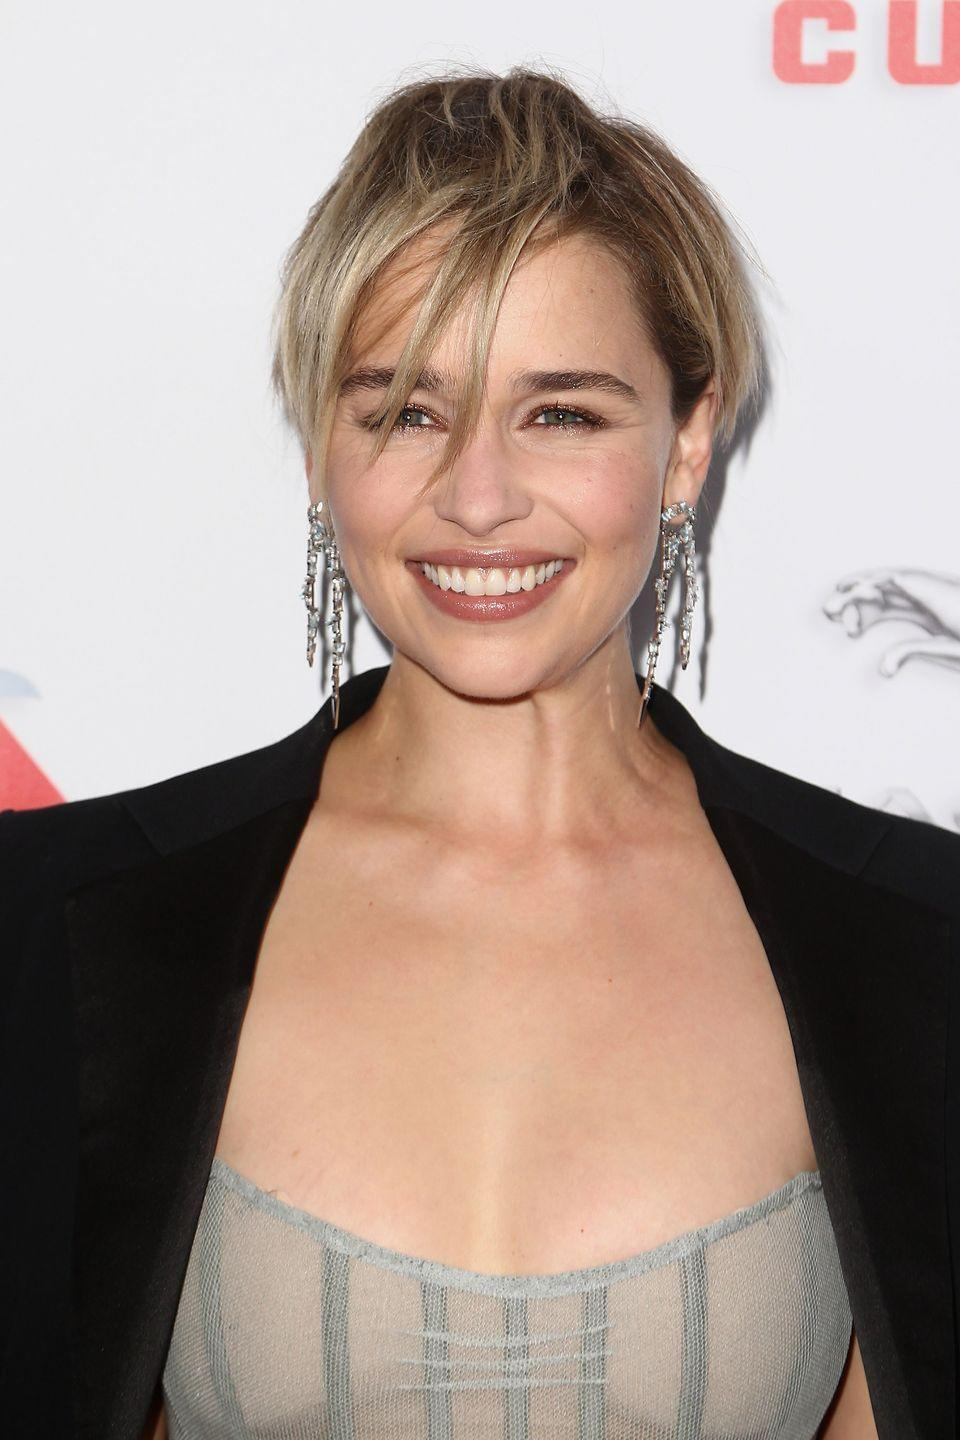 <p>The <em>Game of Thrones</em> star chopped off her hair (and went blonde!) to mark the end of the HBO series.</p>